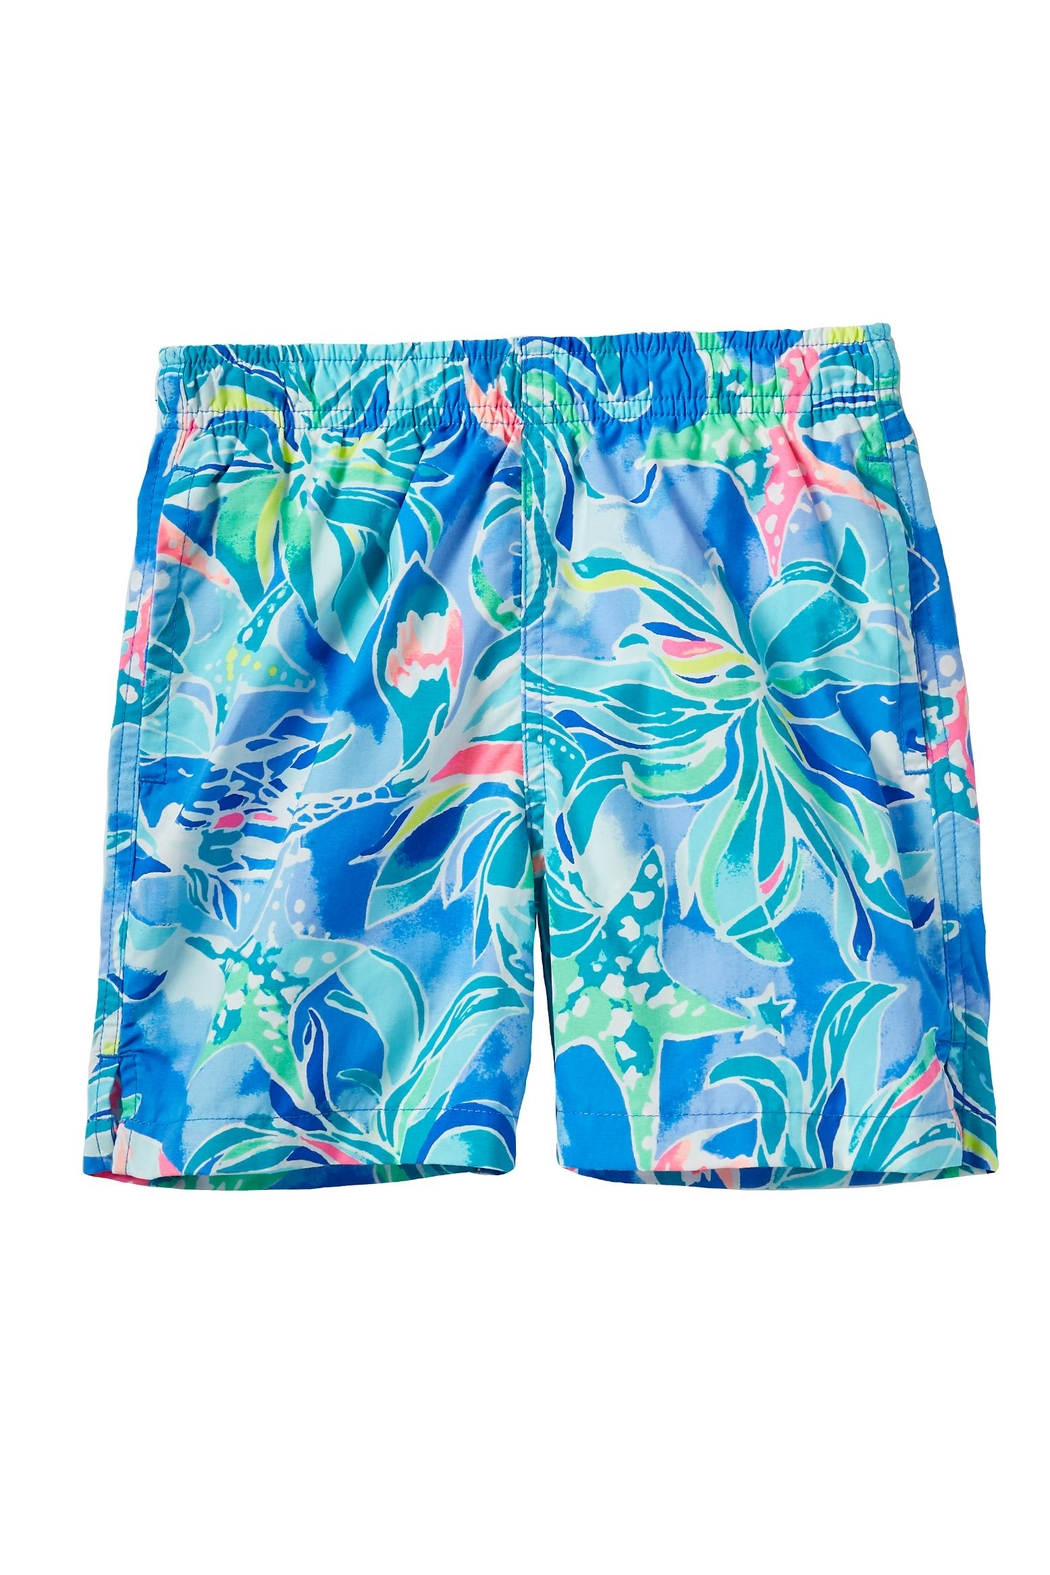 Lilly Pulitzer Boys Capri Swim-Trunk - Main Image